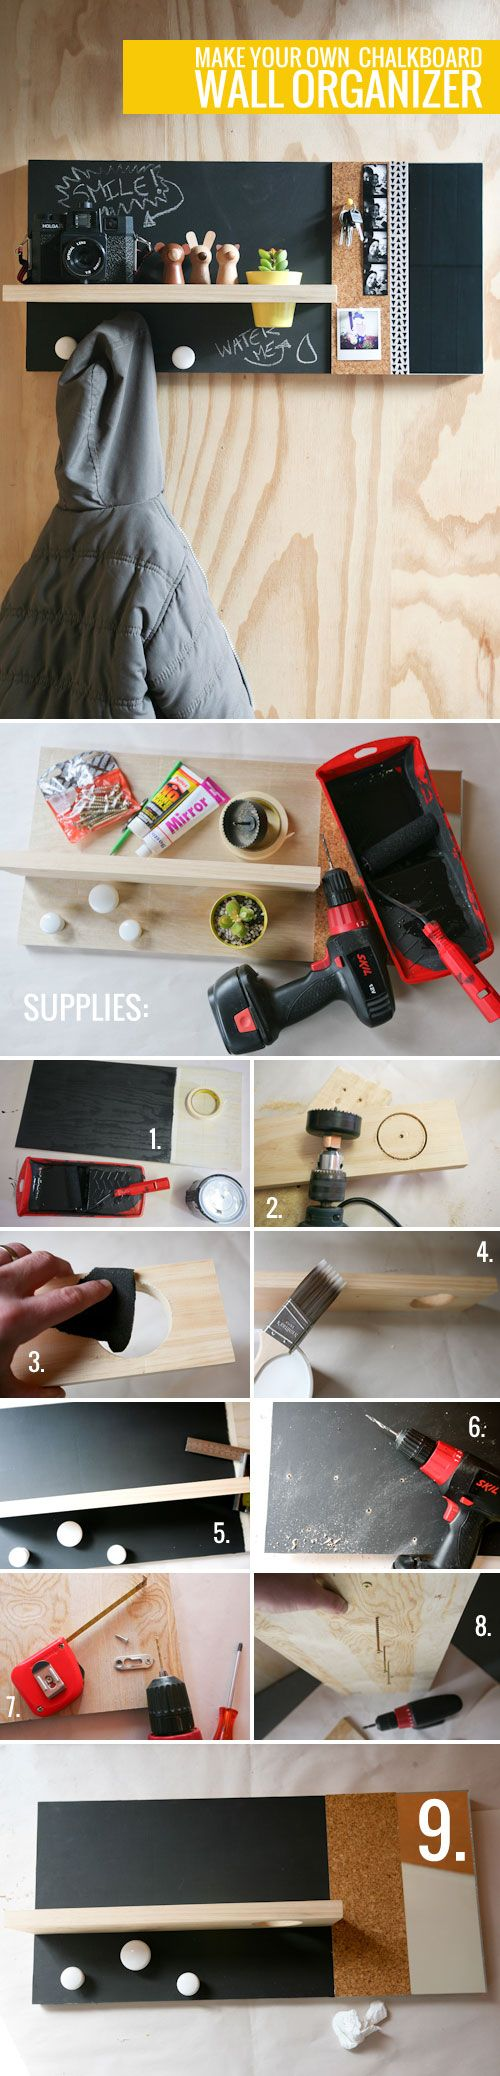 Awesome DIY wall organizer that would be perfect for a small space - like an entryway | From Matt of Curate This Space